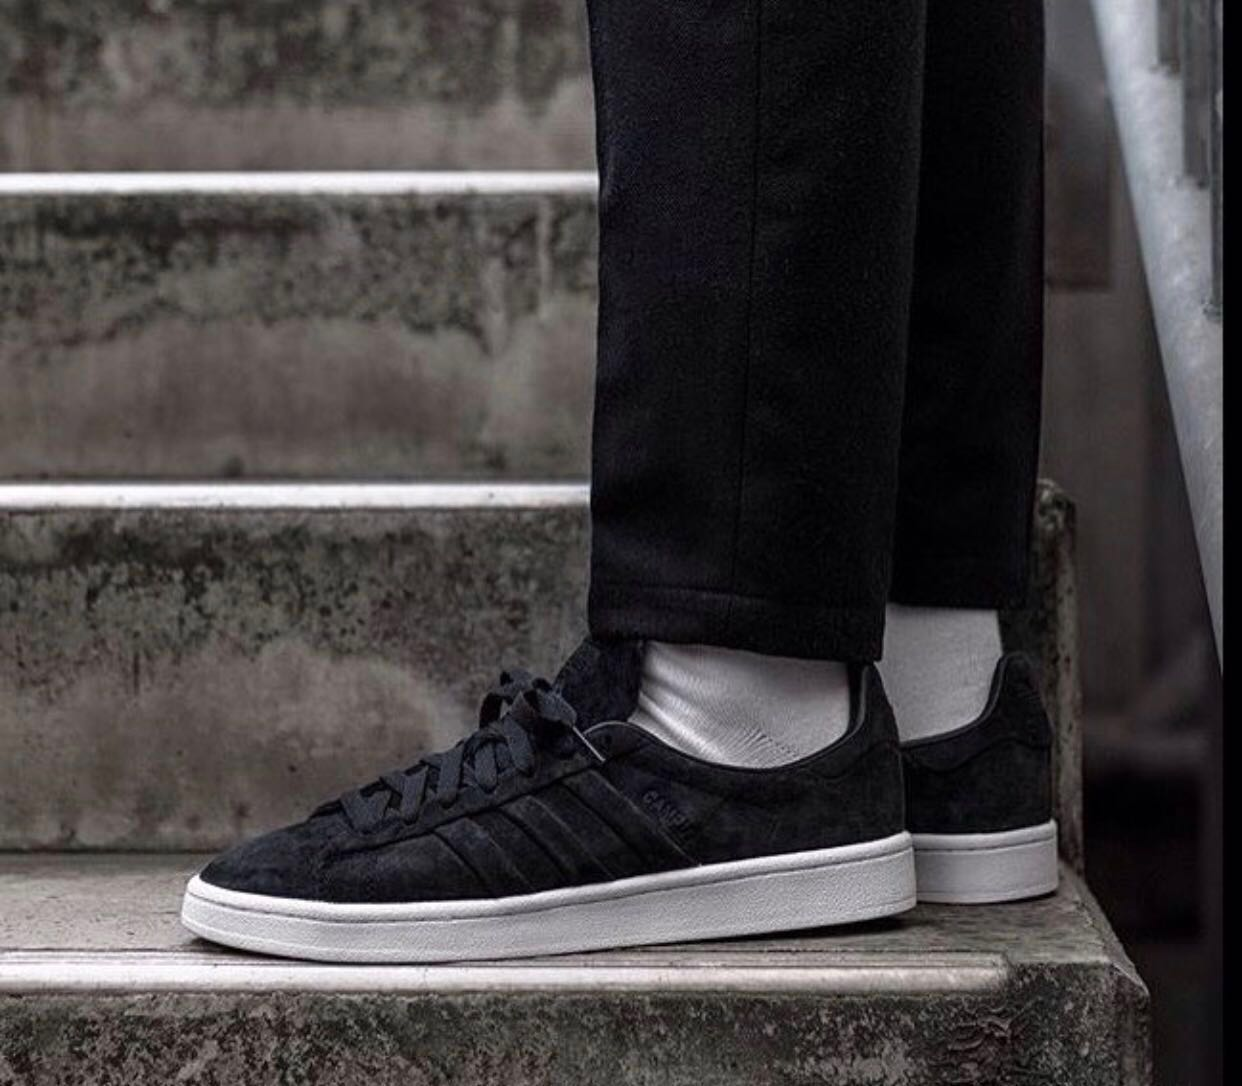 new style 0d3bb 43ed8 Adidas Originals Campus Stitch  Turn, Mens Fashion, Footwear on Carousell